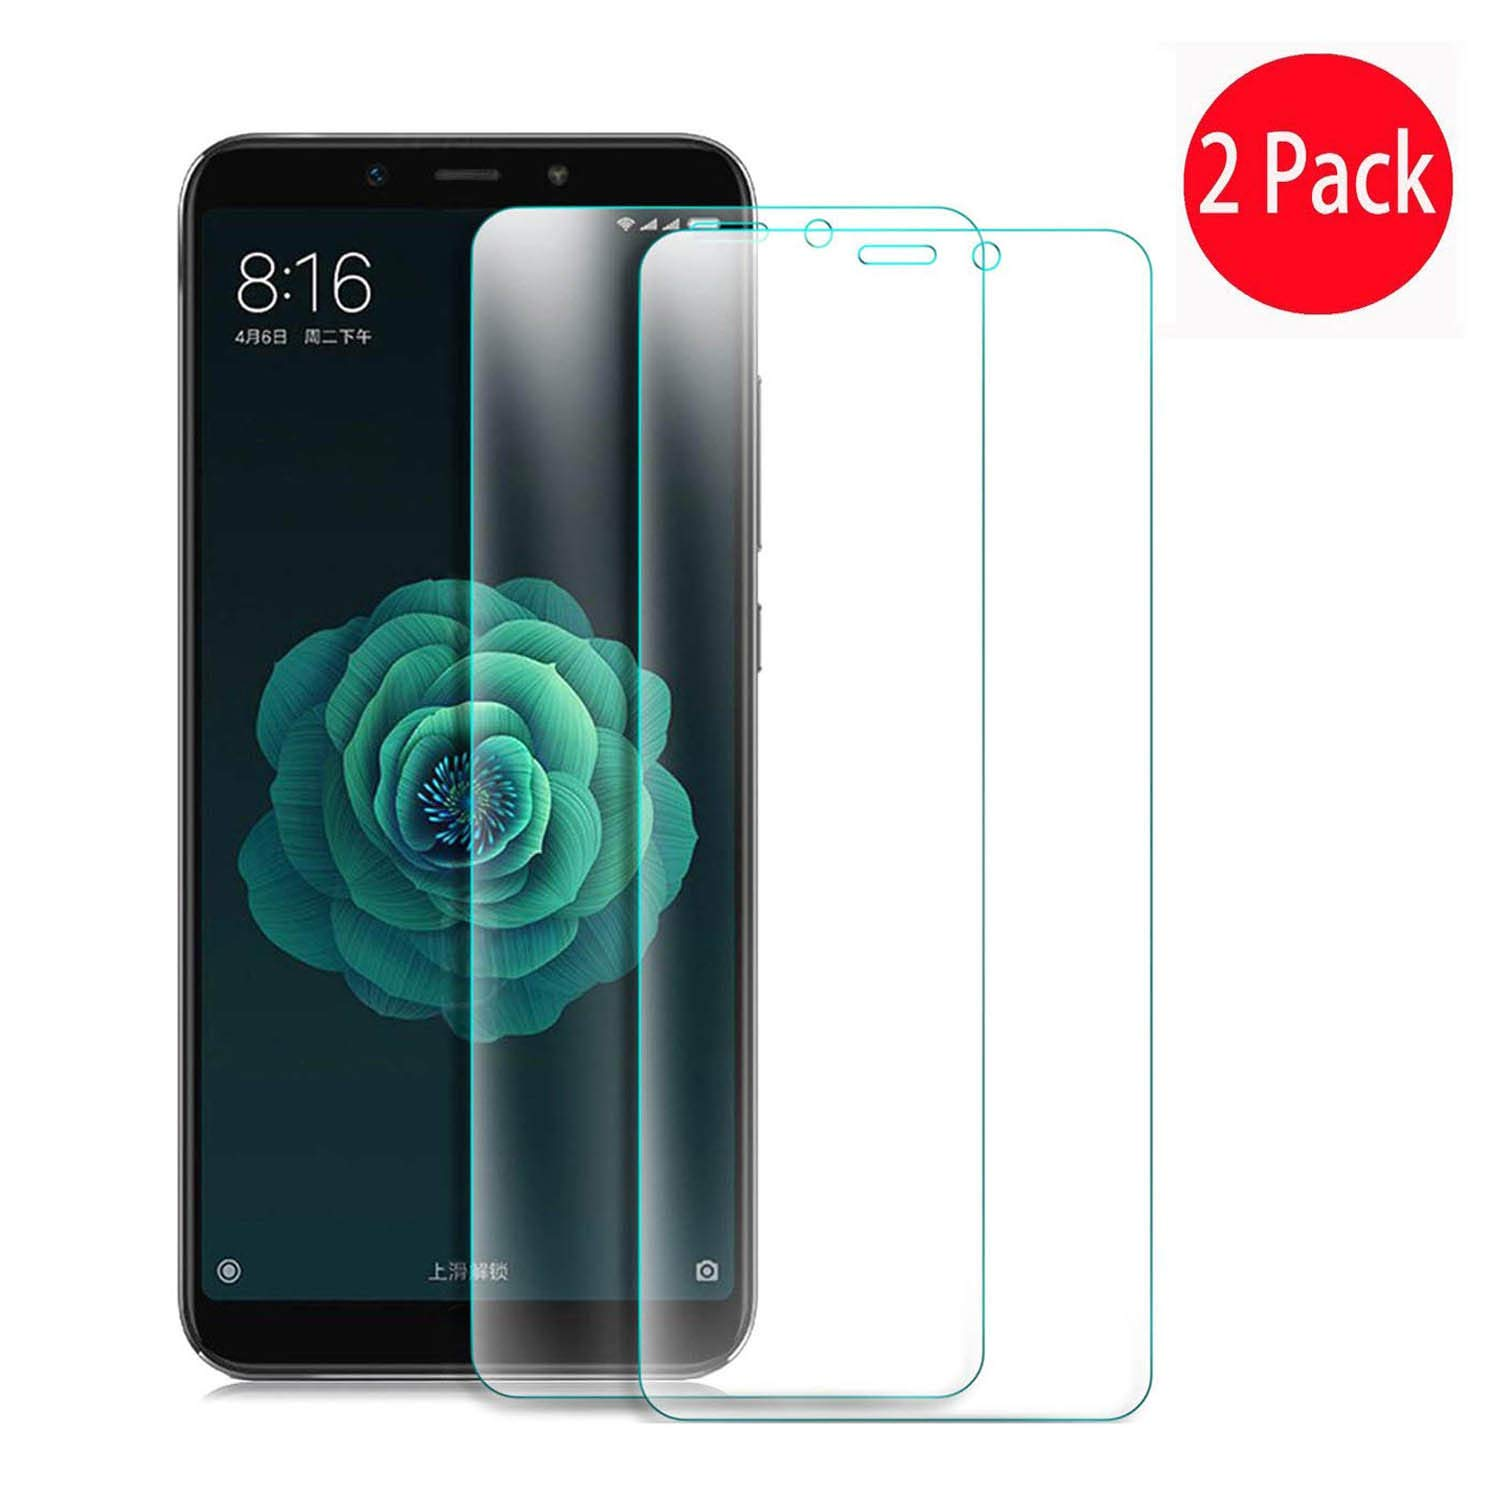 (2 Pack) Xiaomi Mi A2 Screen Protector,Xiaomi Mi 6X Screen Protector- MYLB Full Coverage Screen Protector High Definition Clear, Shockproof, Bubble Free and Easy to Install Protective Film for Xiaomi Mi A2/Xiaomi Mi 6X smartphone (Transparent) OEM